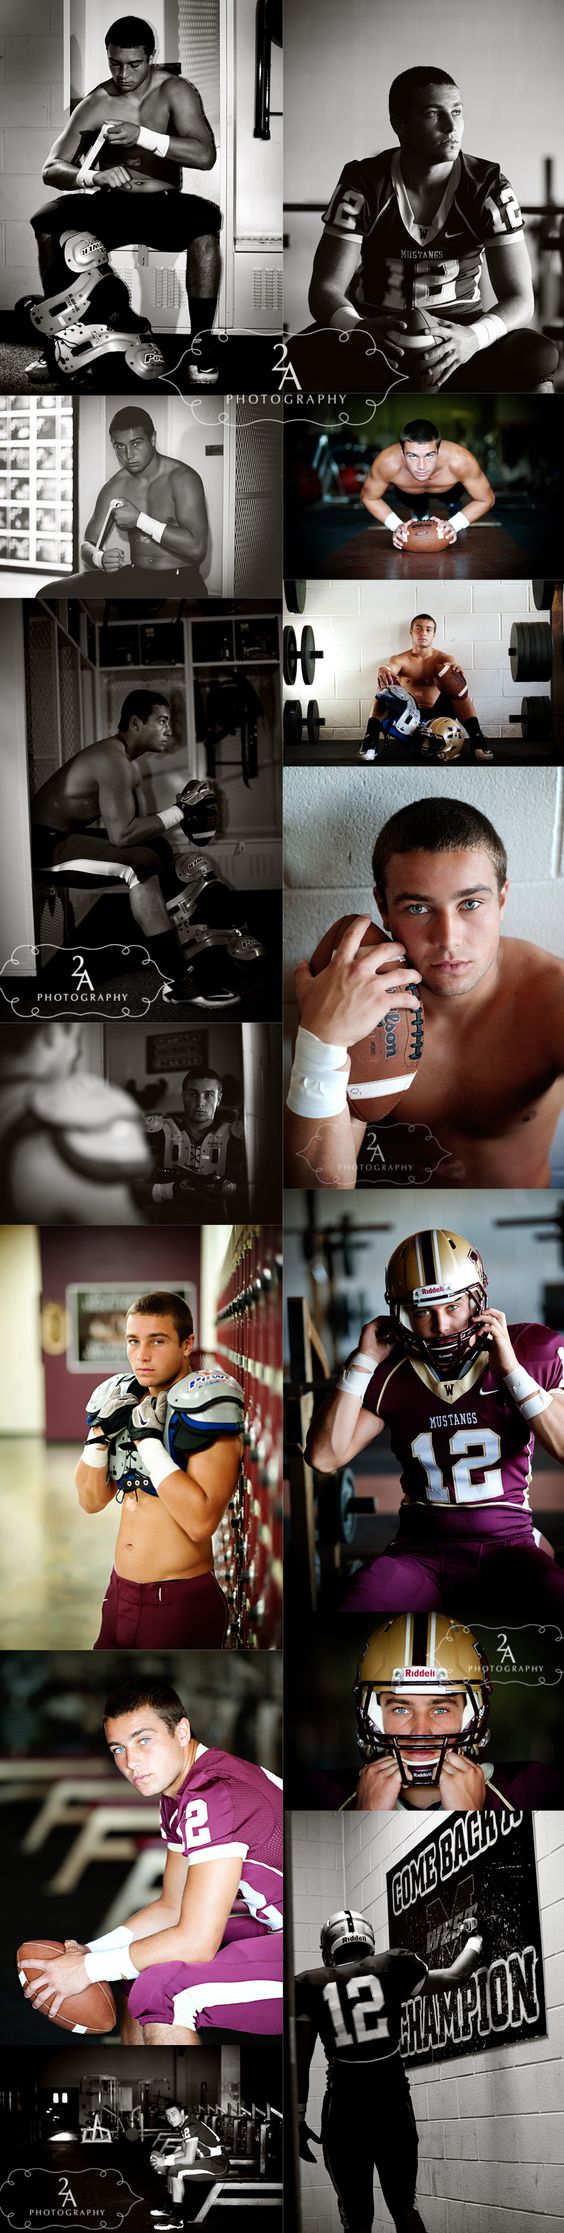 Football Player Senior Photography Session/Could be any sport. these are amazing compared to the standard smiling shots.